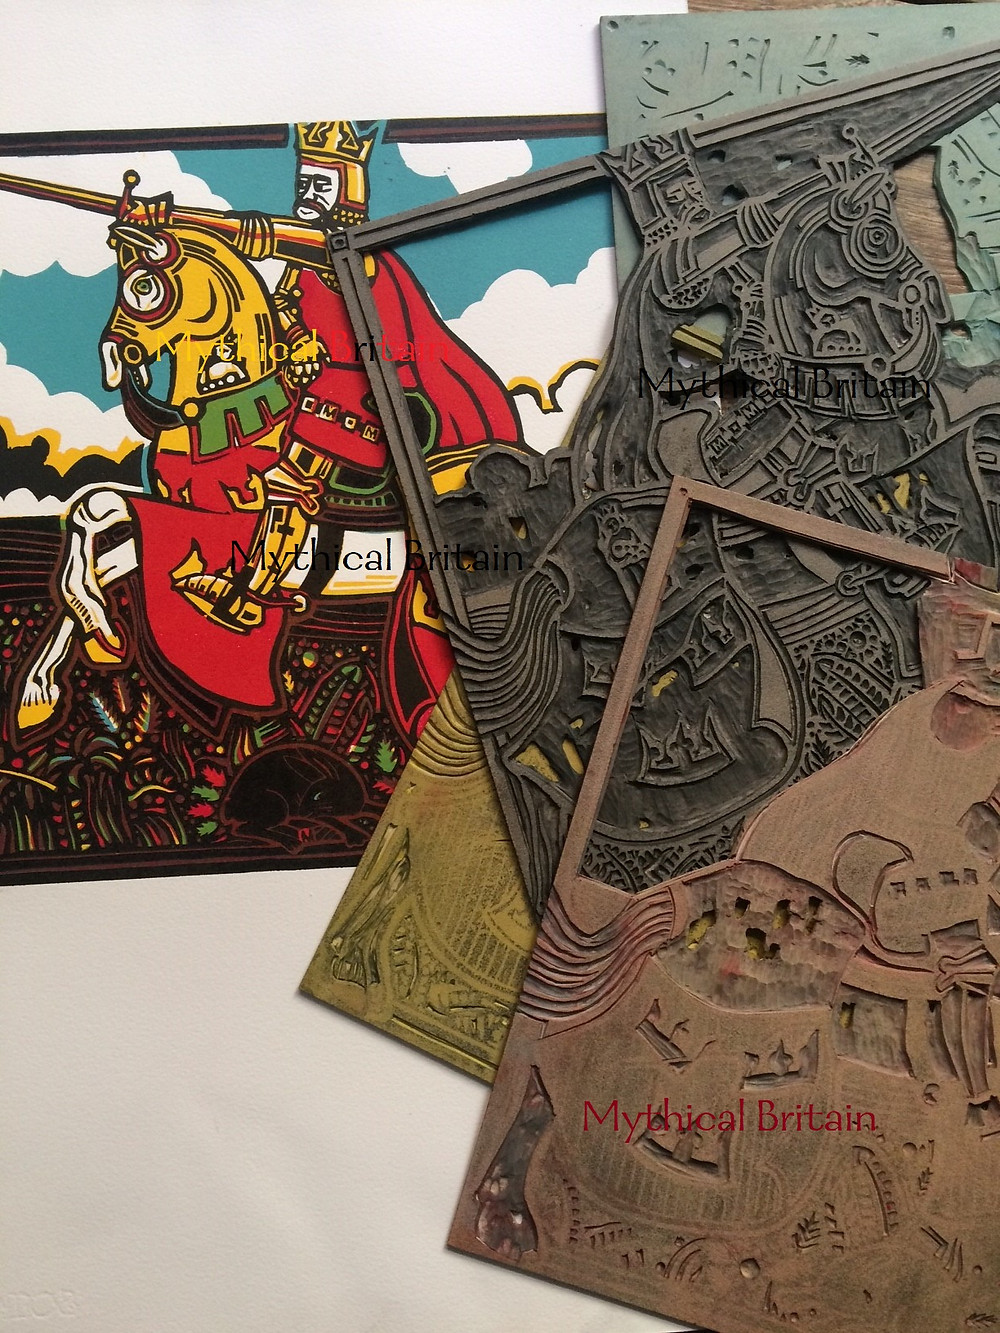 The final linocut print of King Arthur with associated lino blocks